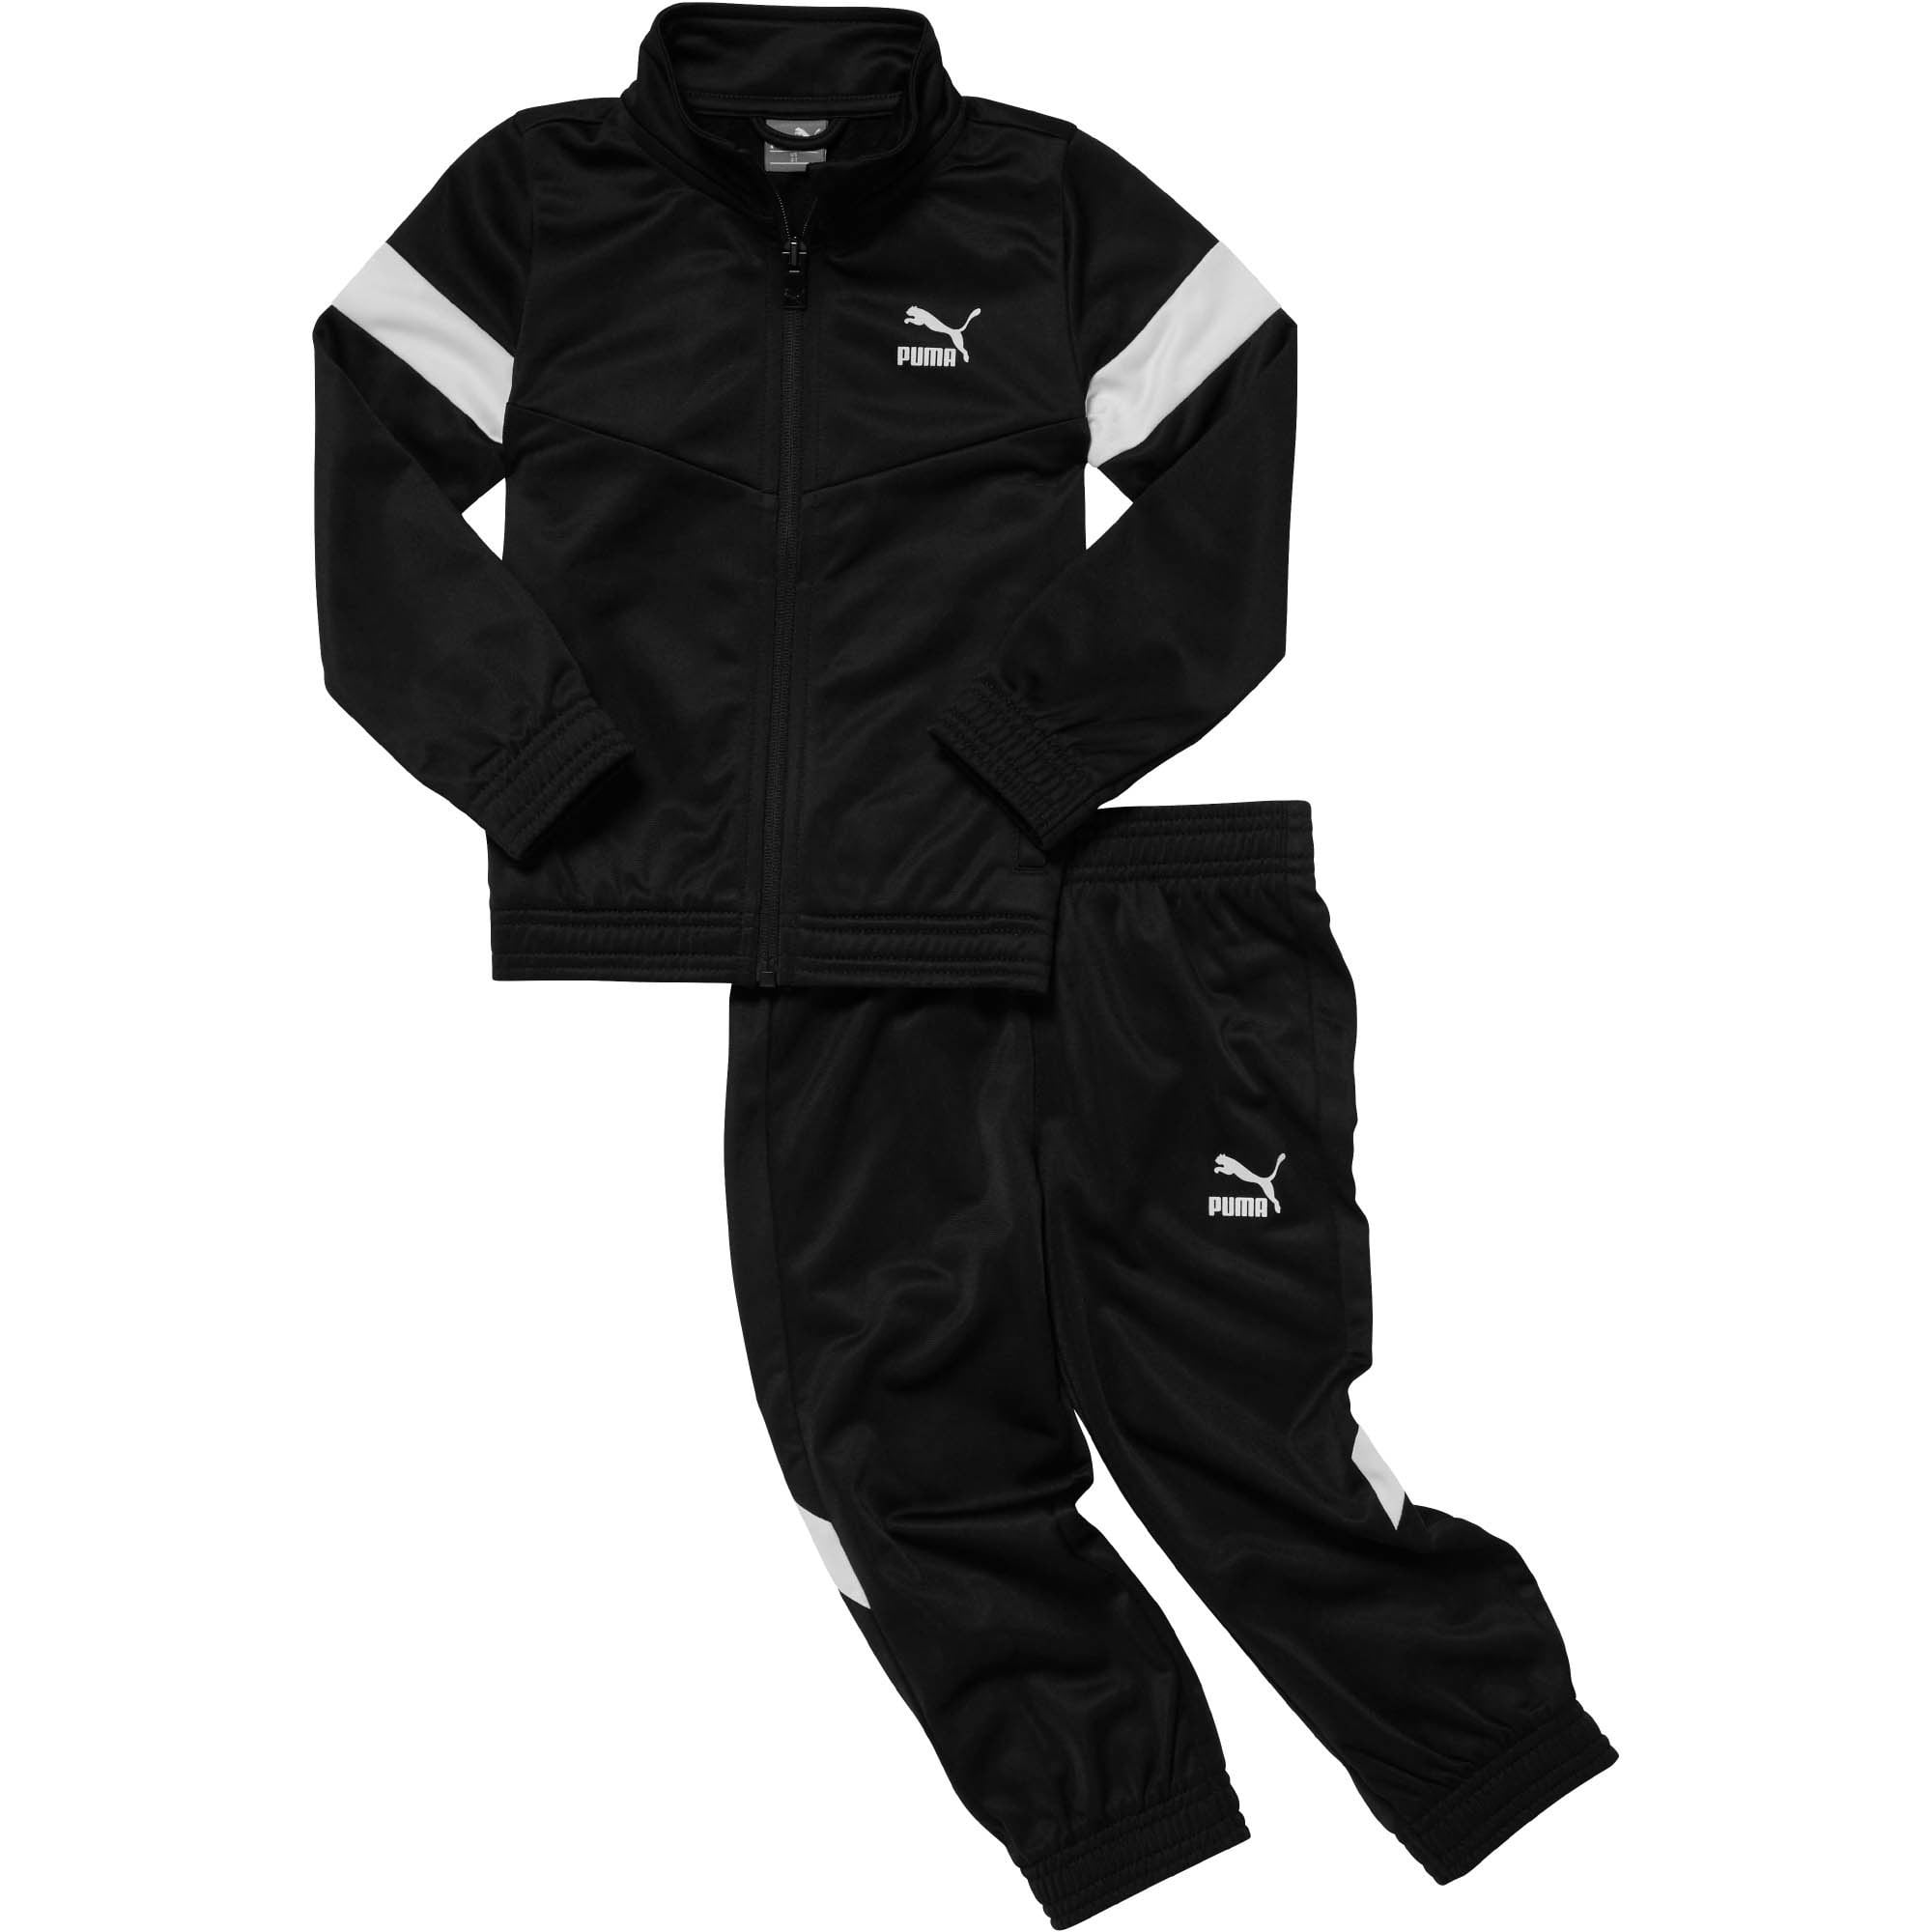 Thumbnail 1 of MCS Pack Infant Colorblock Tracksuit Set, PUMA BLACK, medium